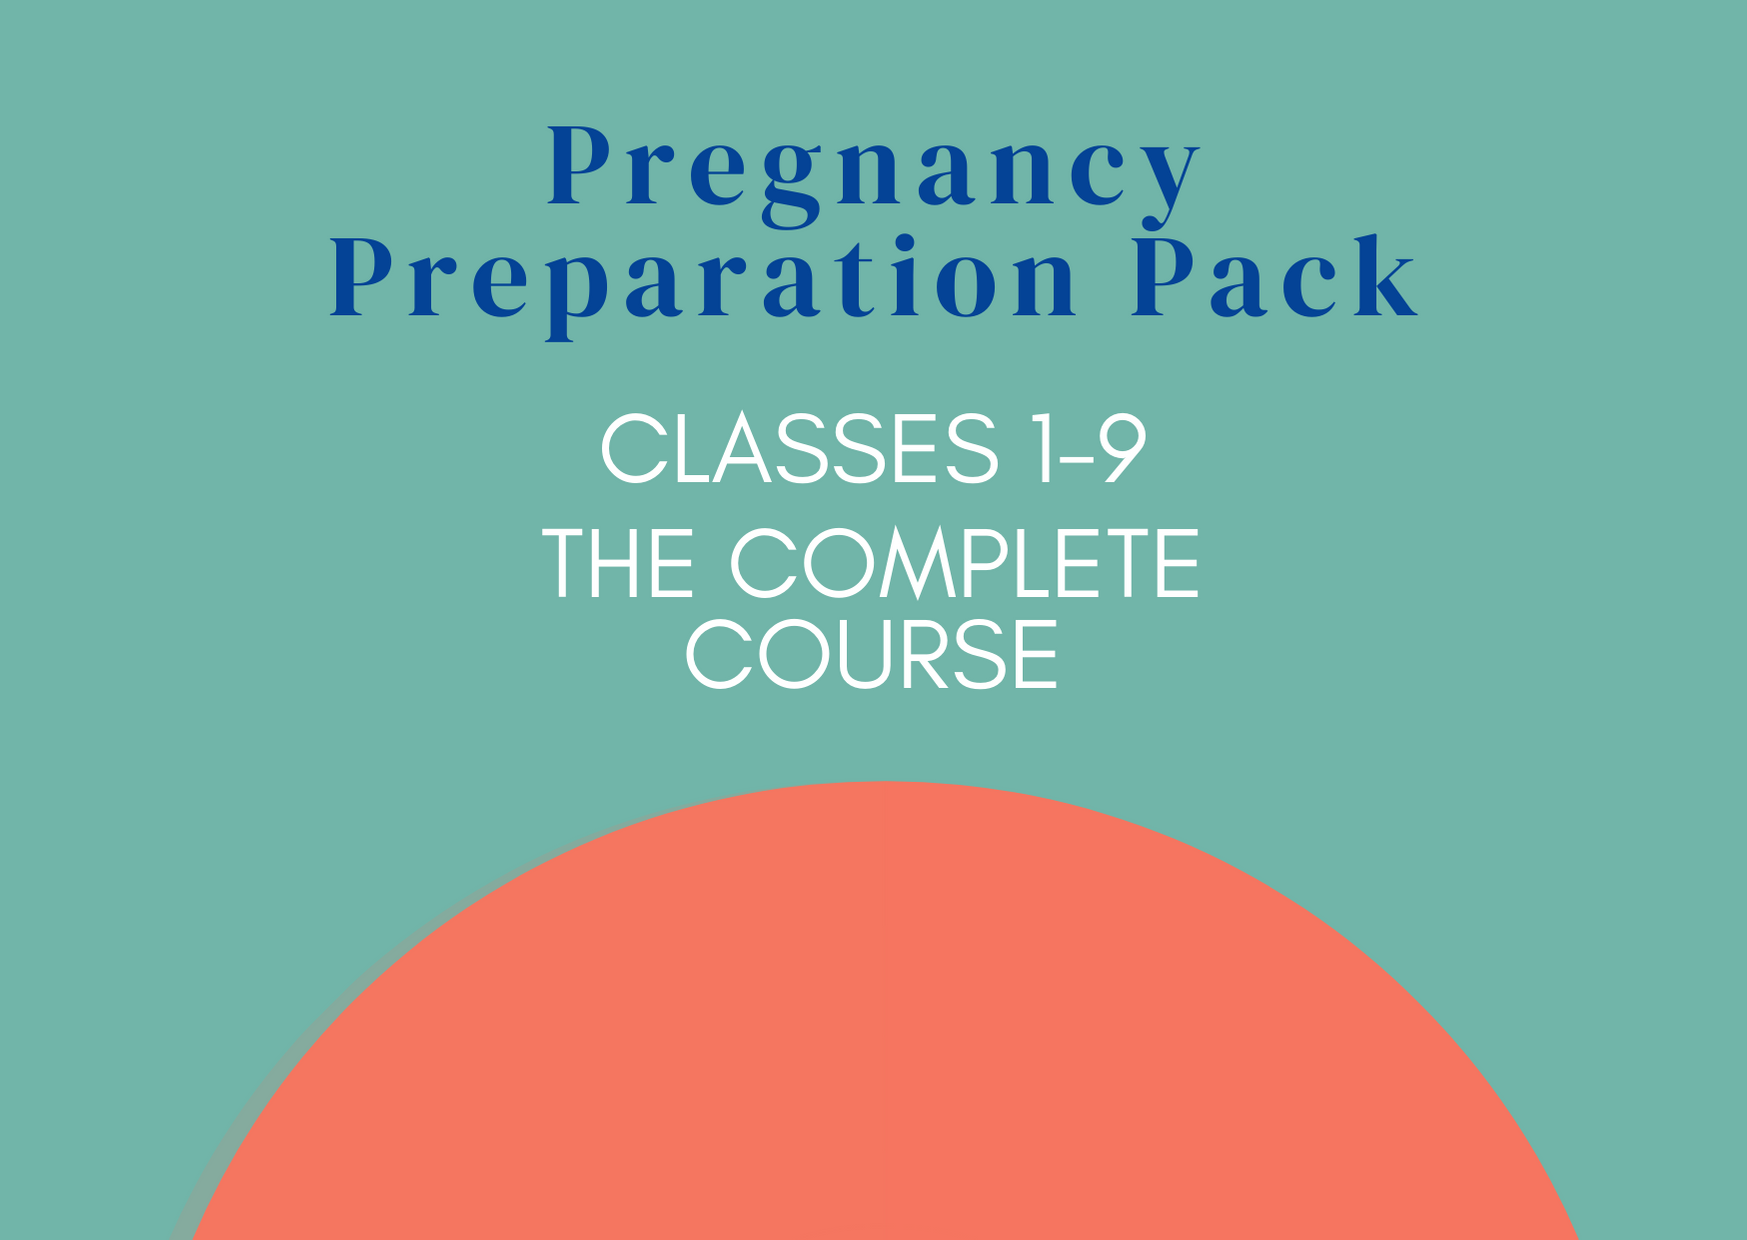 Your Pregnancy Preparation Pack